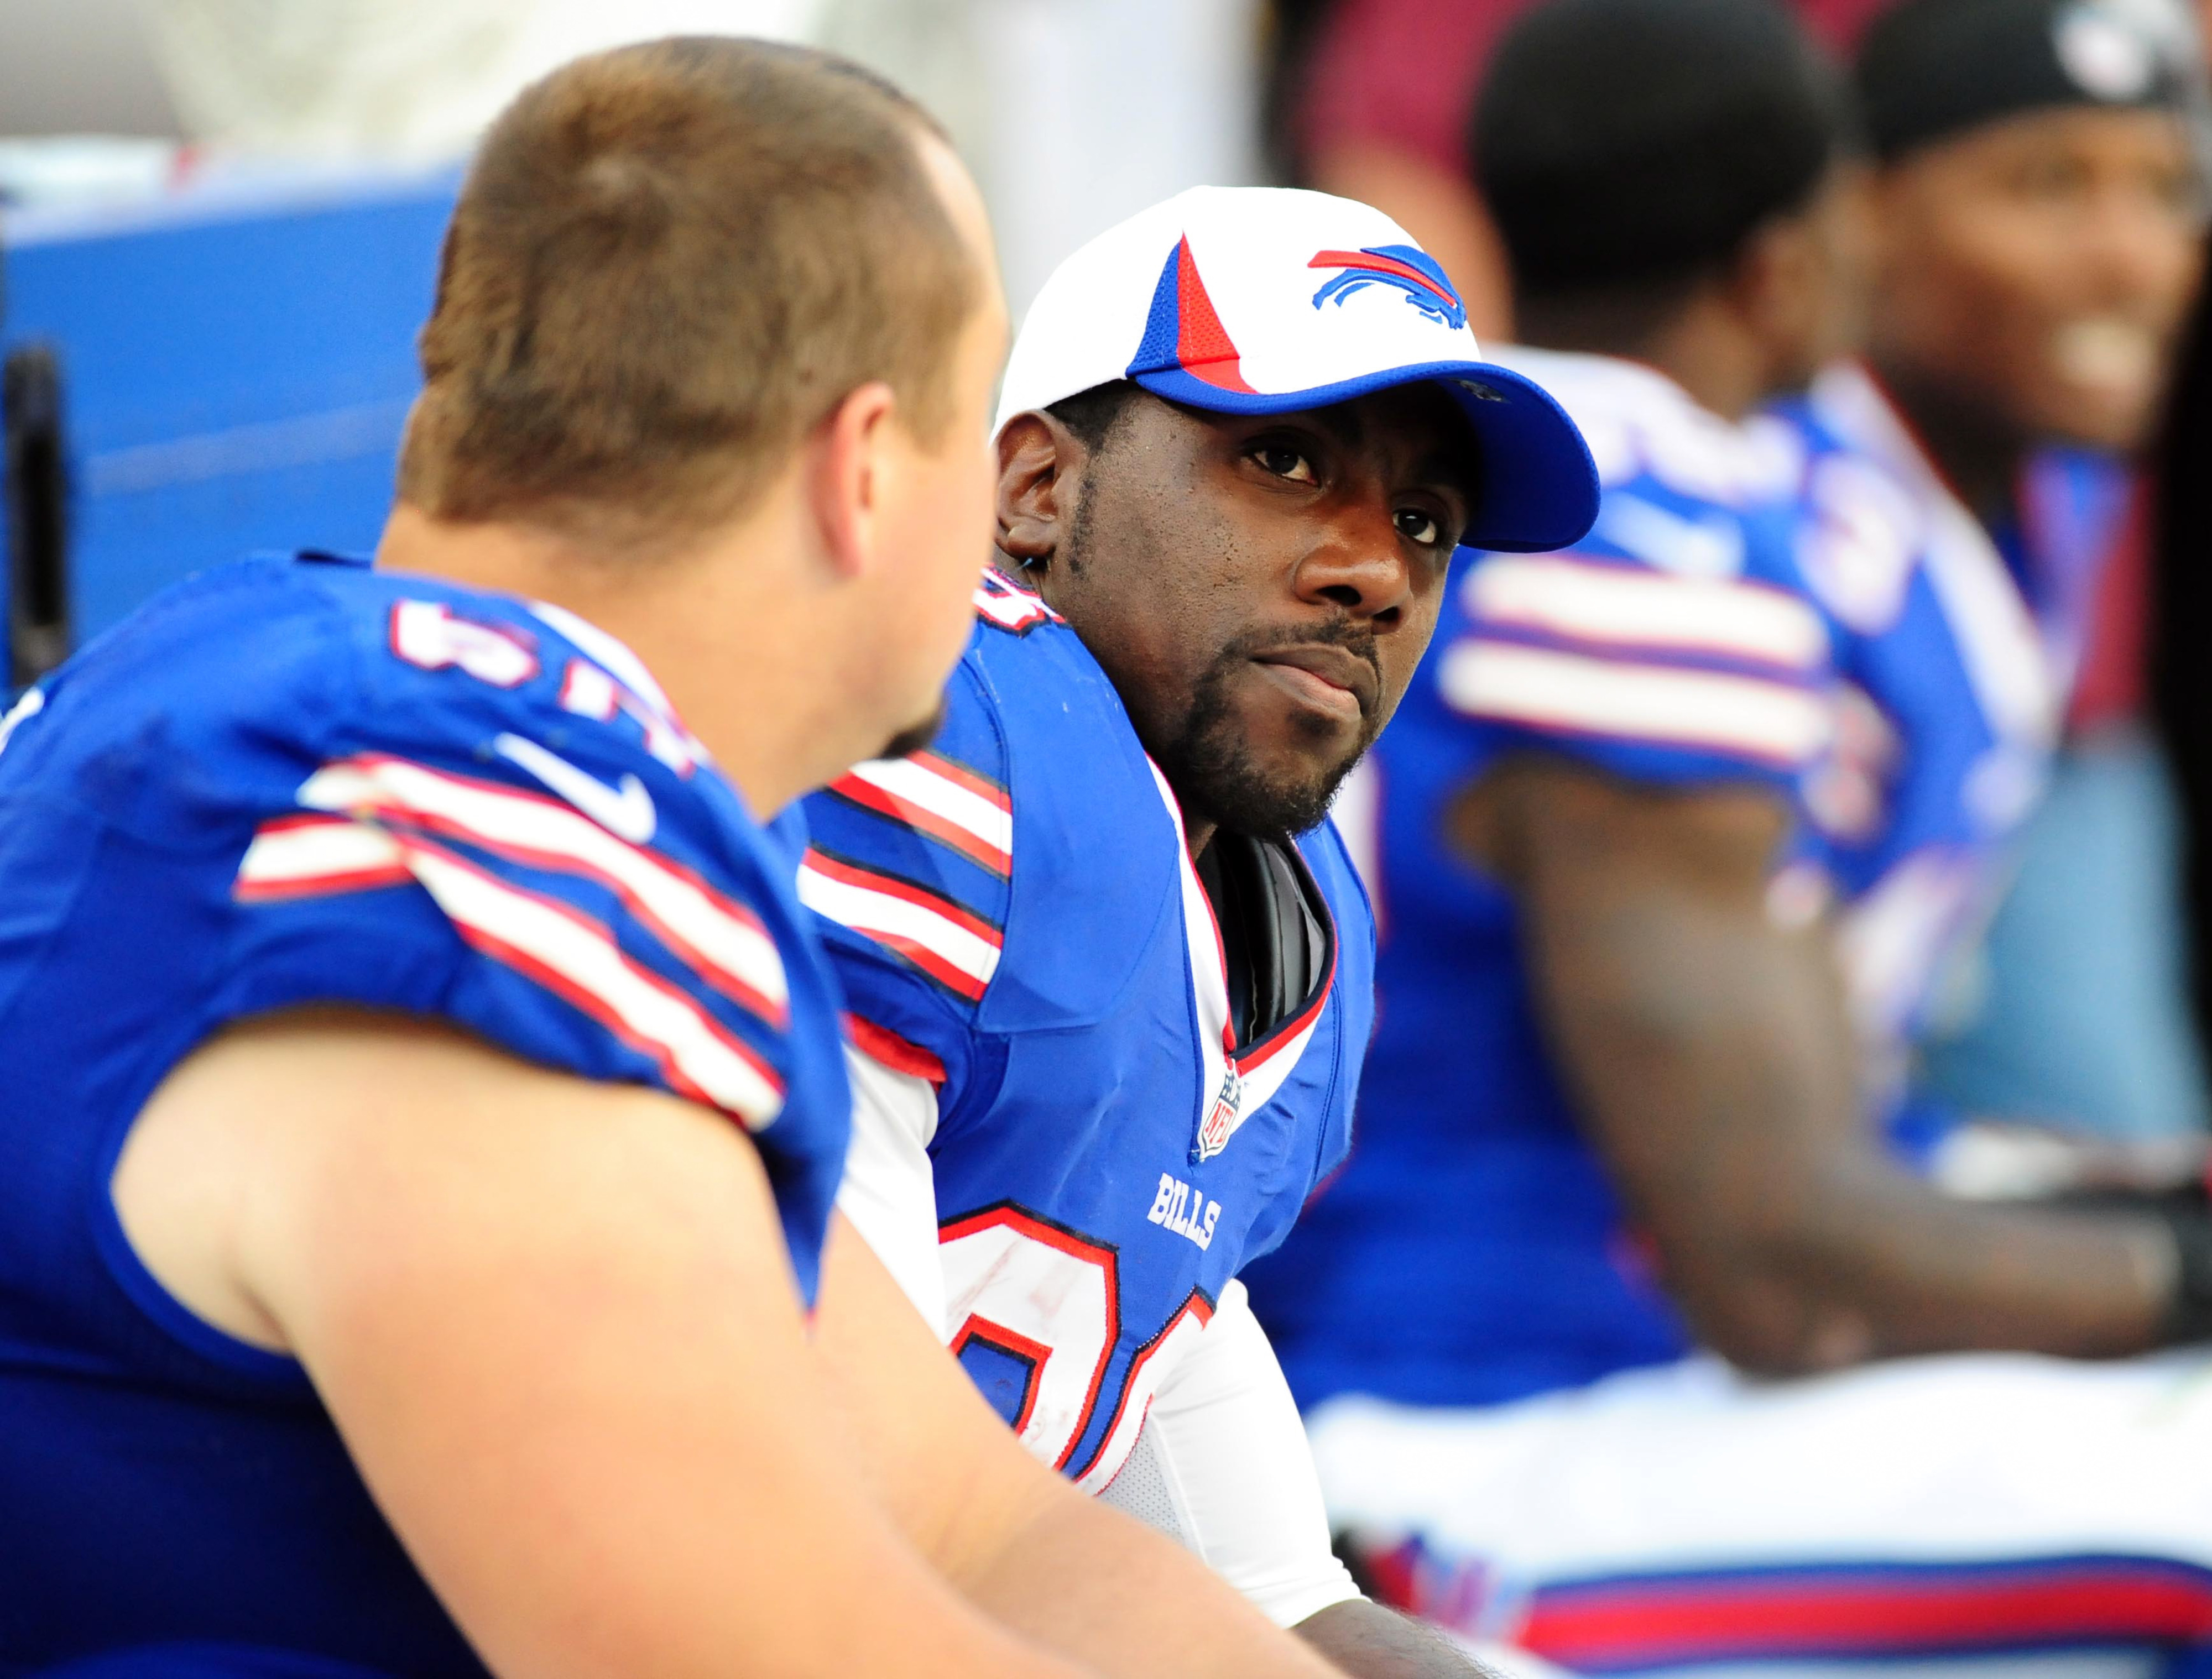 C.J. Spiller leaves Buffalo Bills to be with family